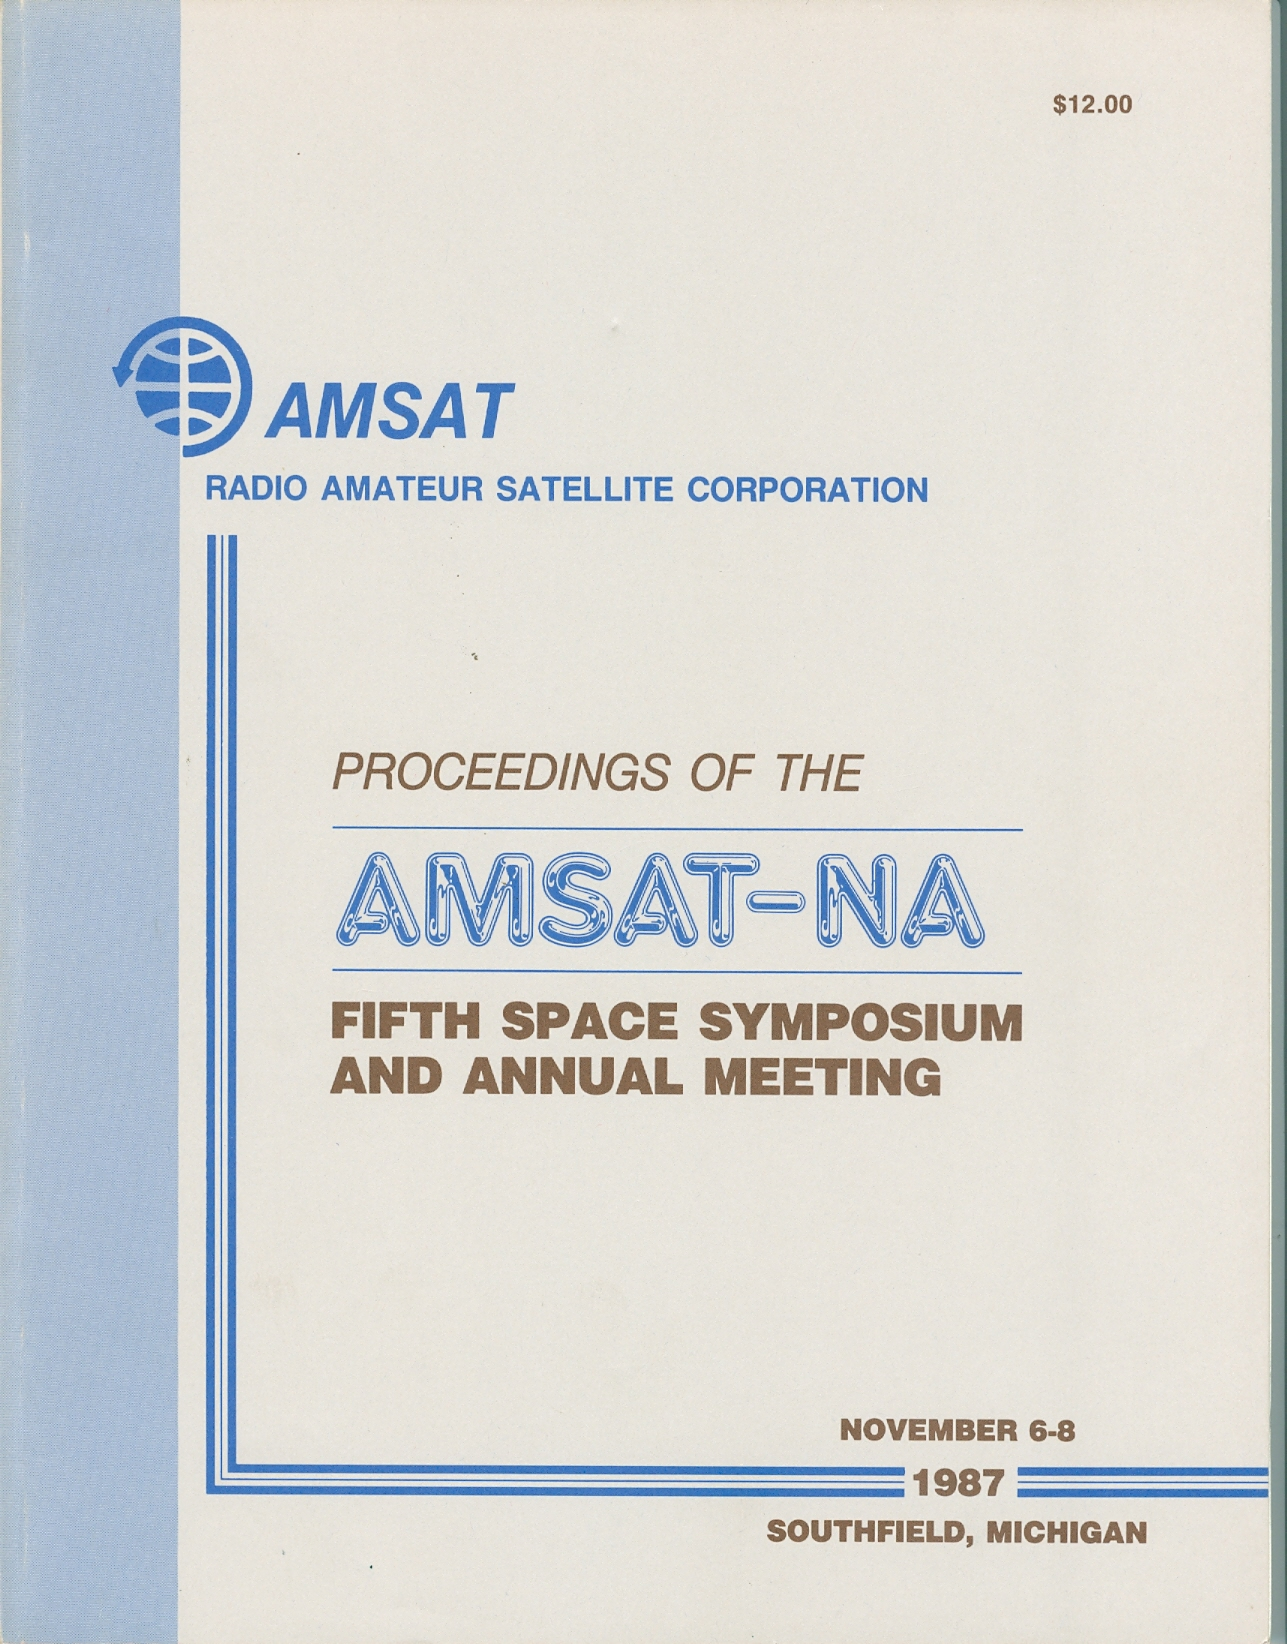 Proceedings of the AMSAT-NA Fifth Space Symposium and Annual Meeting